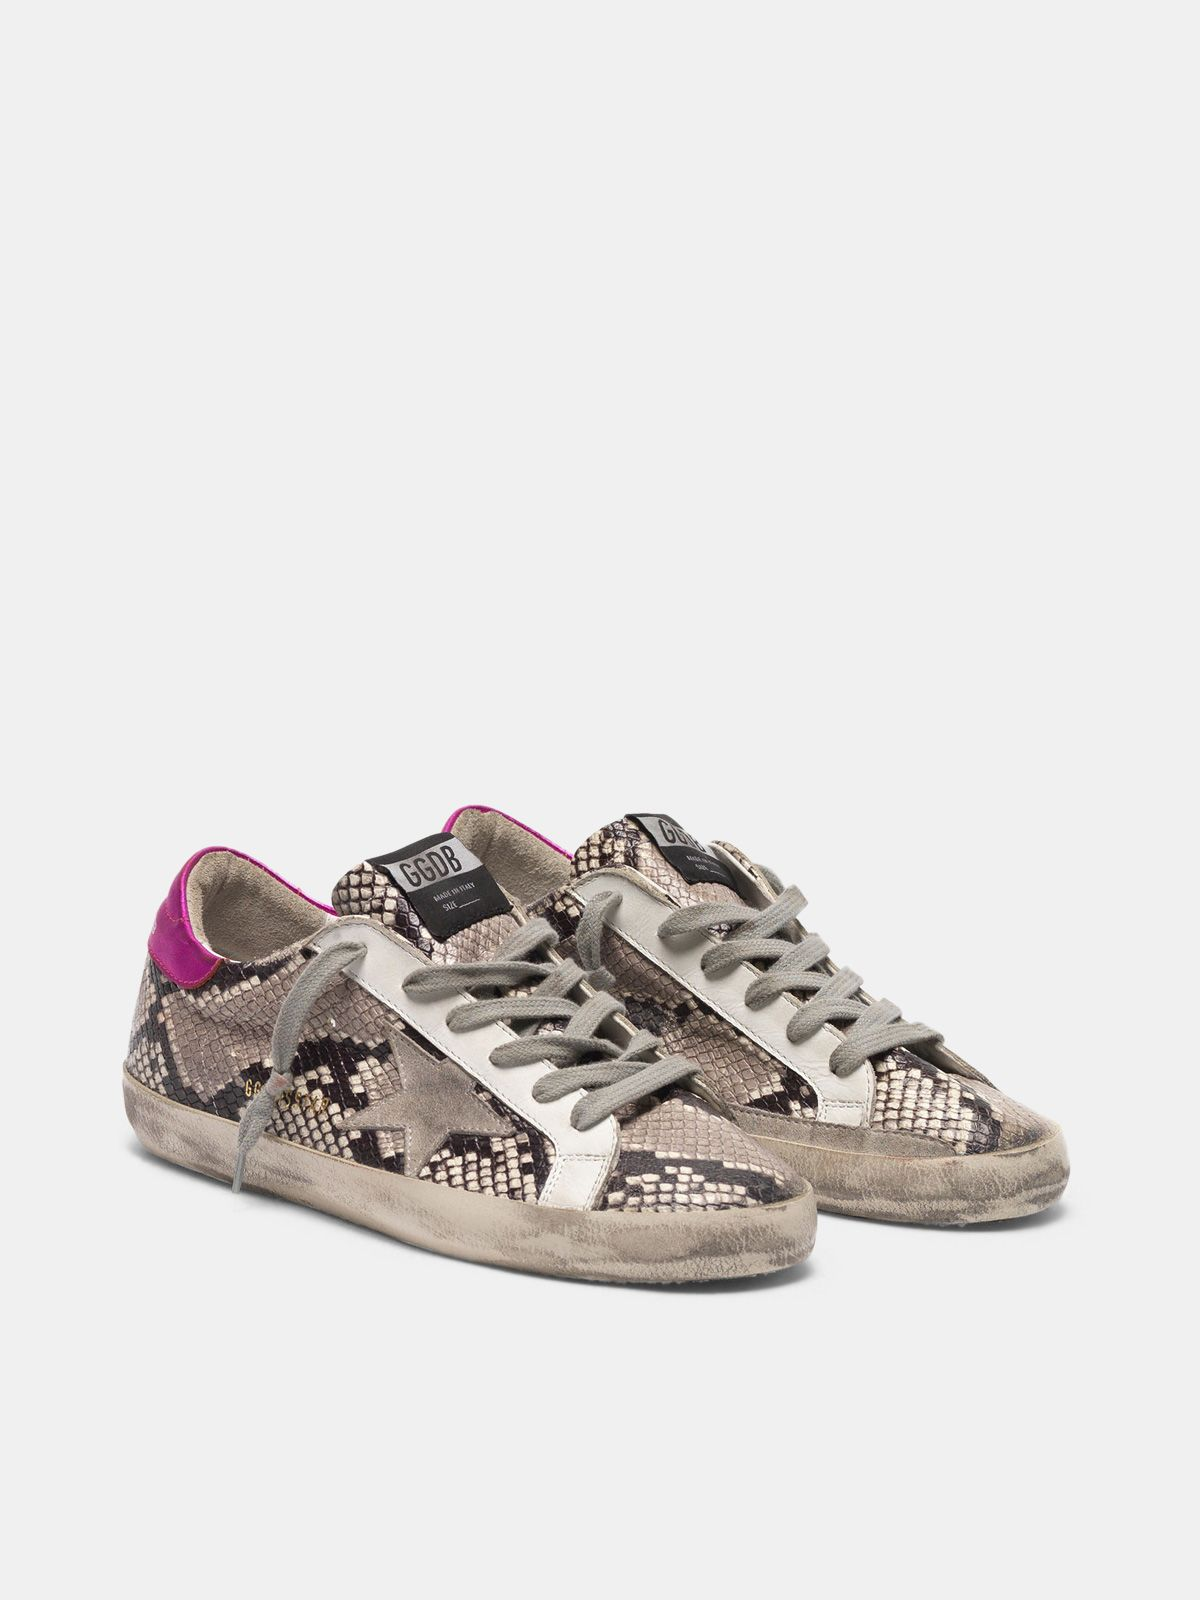 Golden Goose - Super-Star sneakers in python-print leather   in